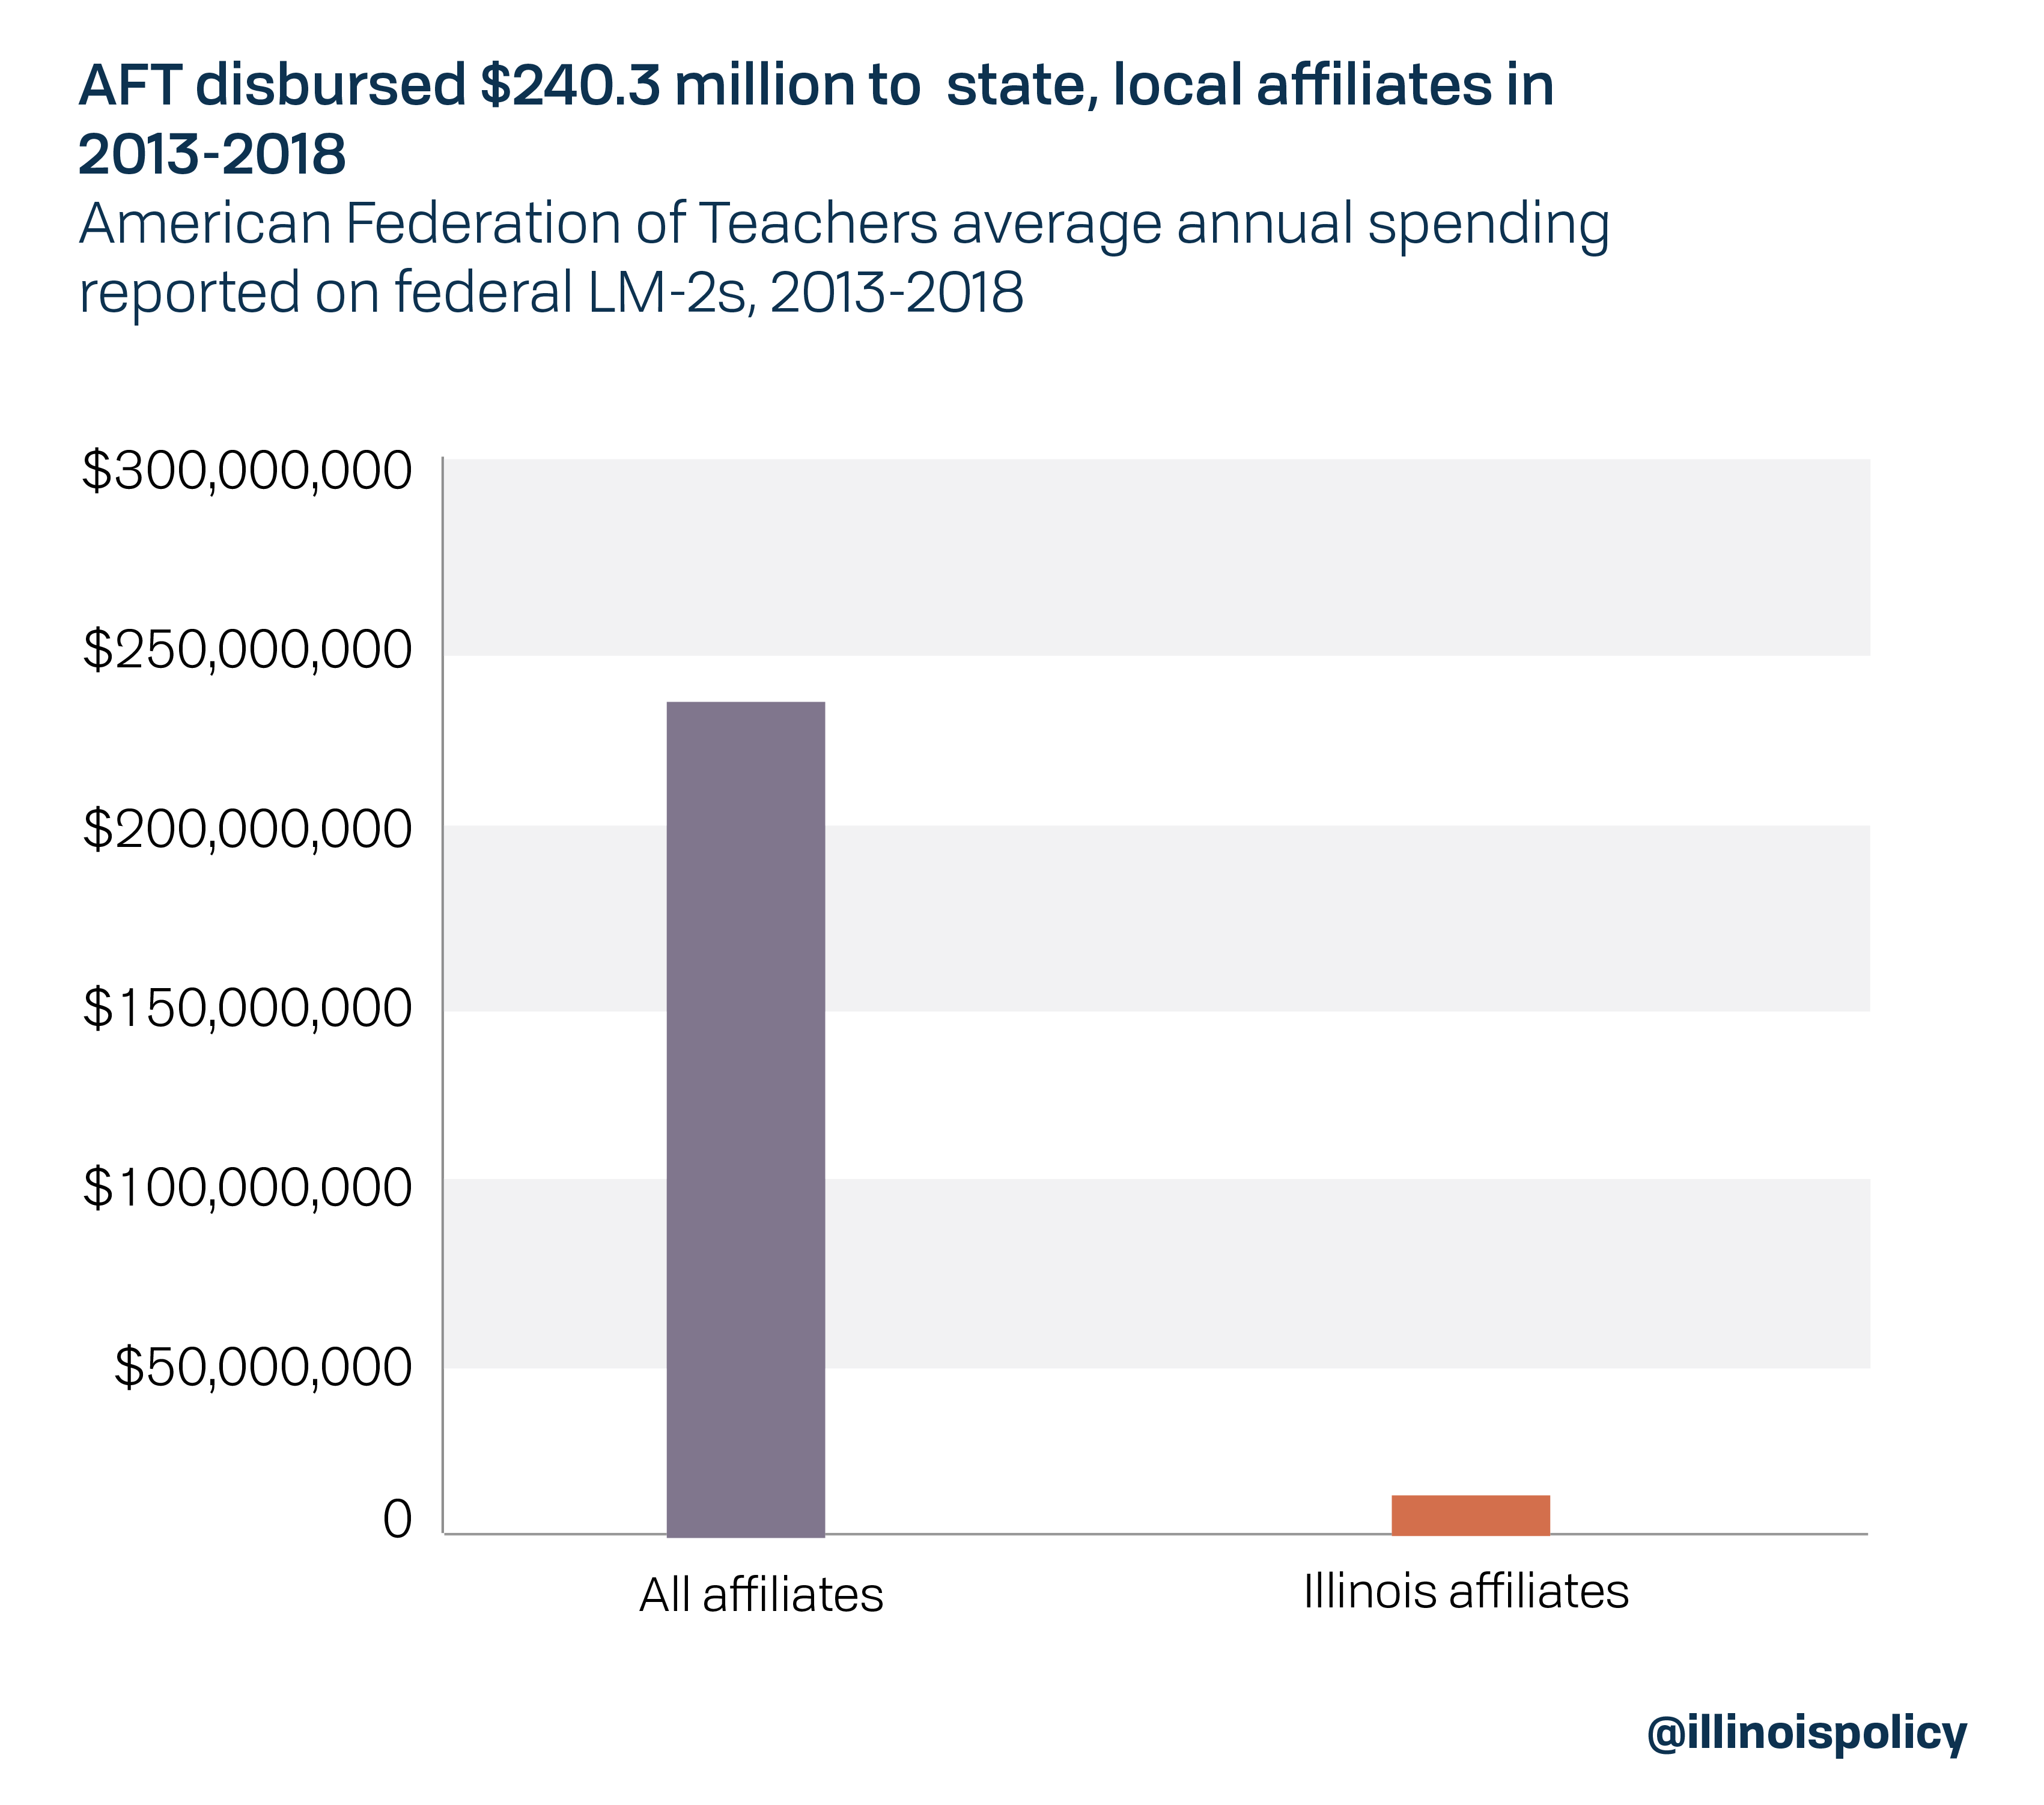 AFT disbursed $240.4 million to state, local affiliates in 2013-2018